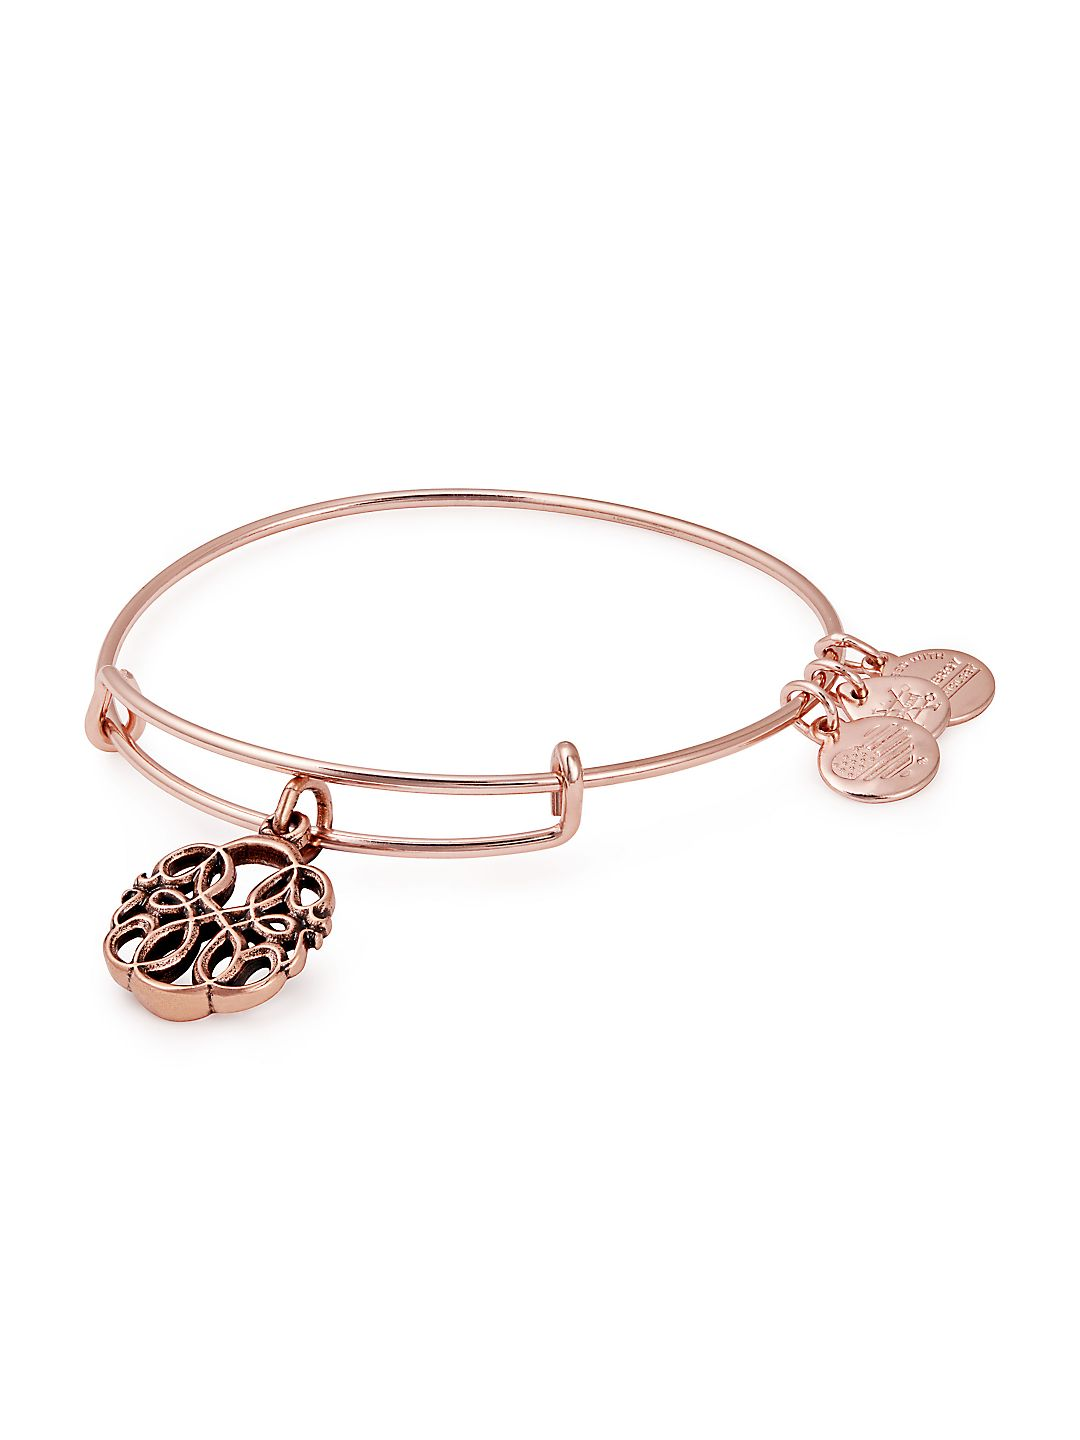 Holiday Path of Life Charm Bangle Bracelet